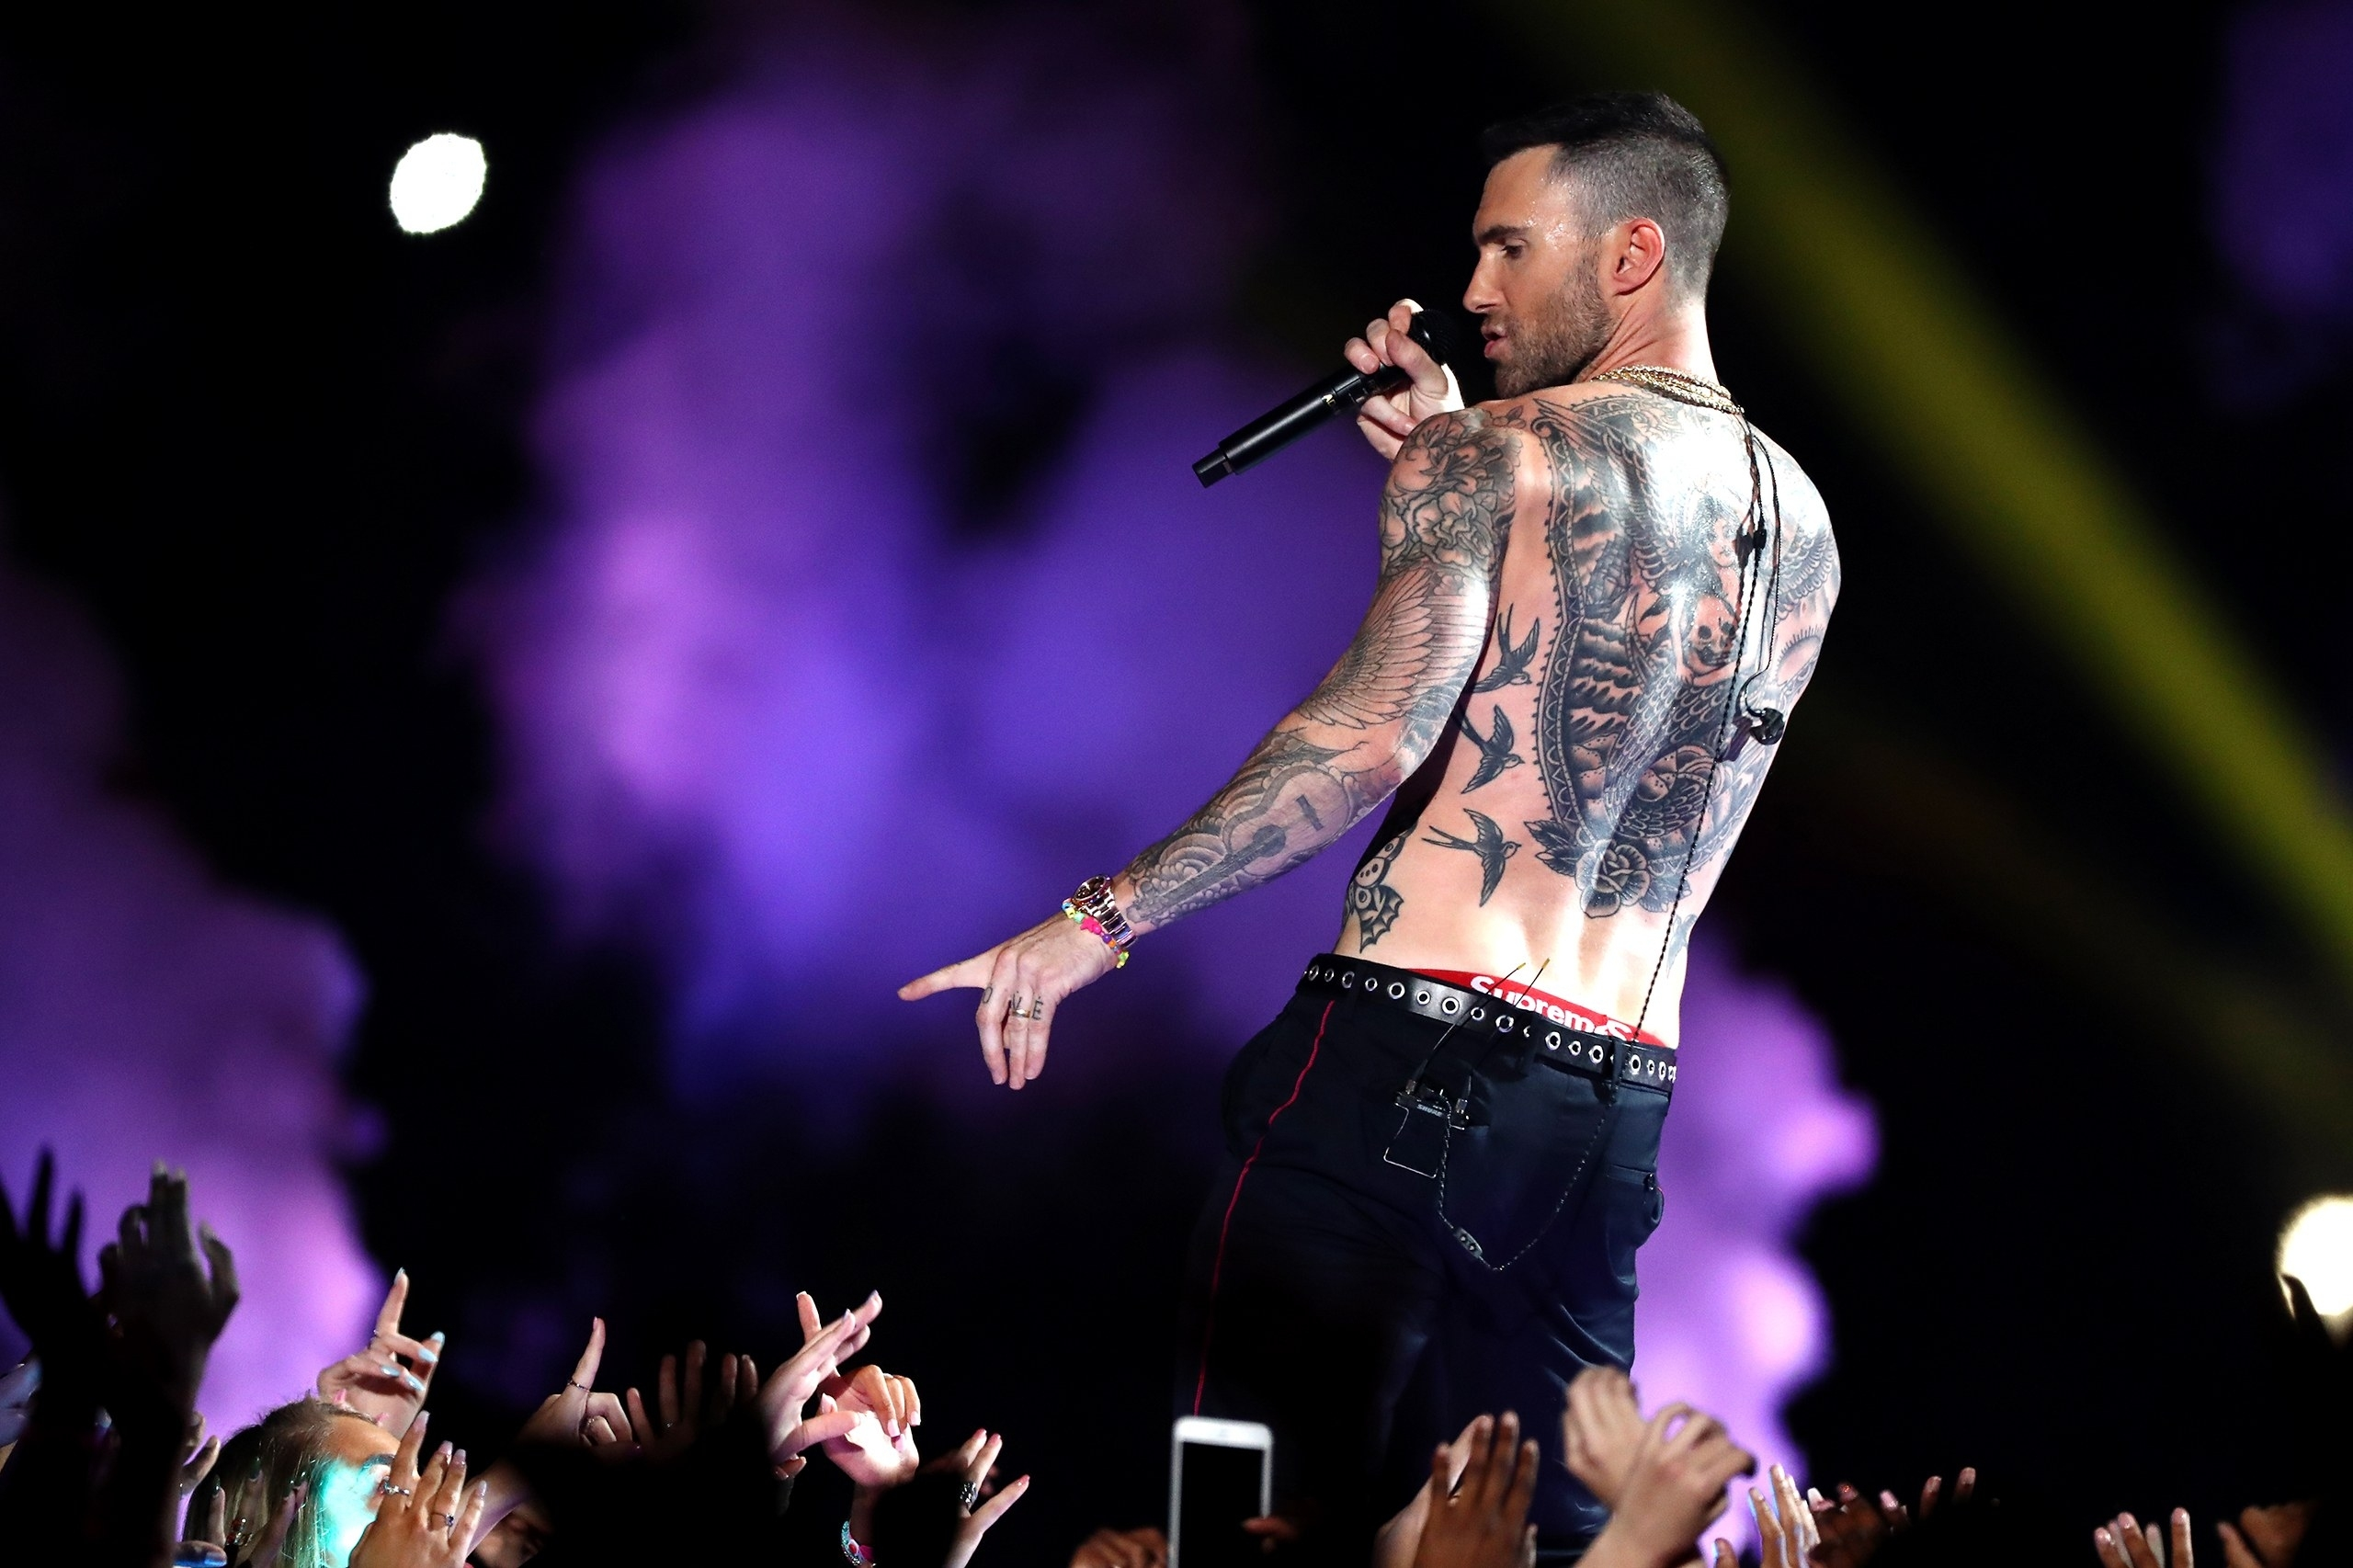 The Artless Spectacle Of Maroon 5 At The Super Bowl | The intended for Super Bowl Maroon 5